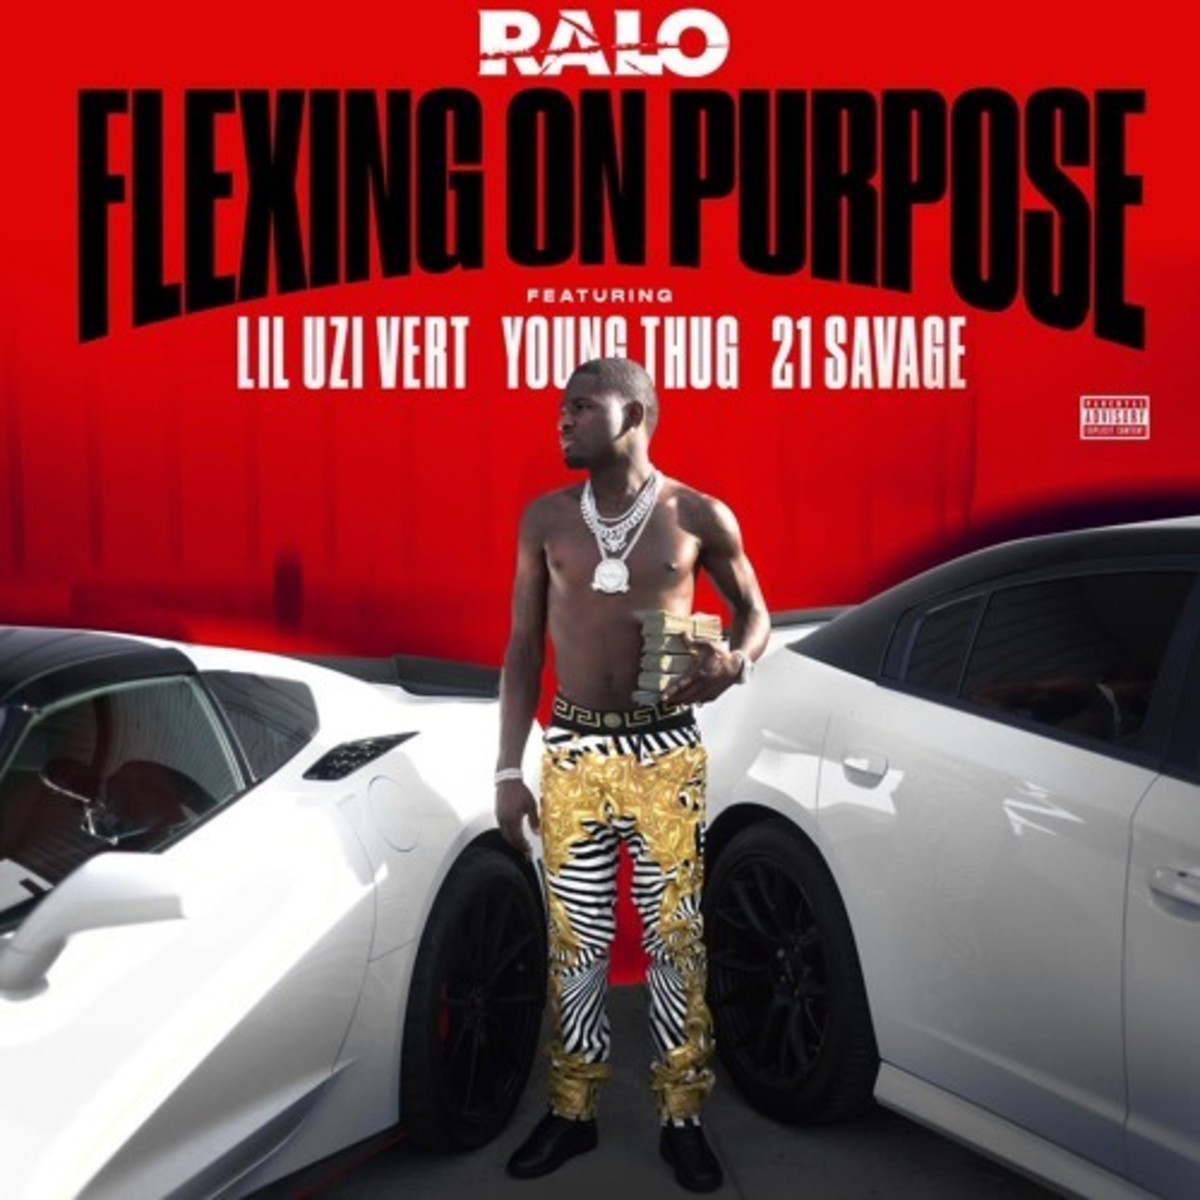 ralo-flexin-on-purpose.jpg